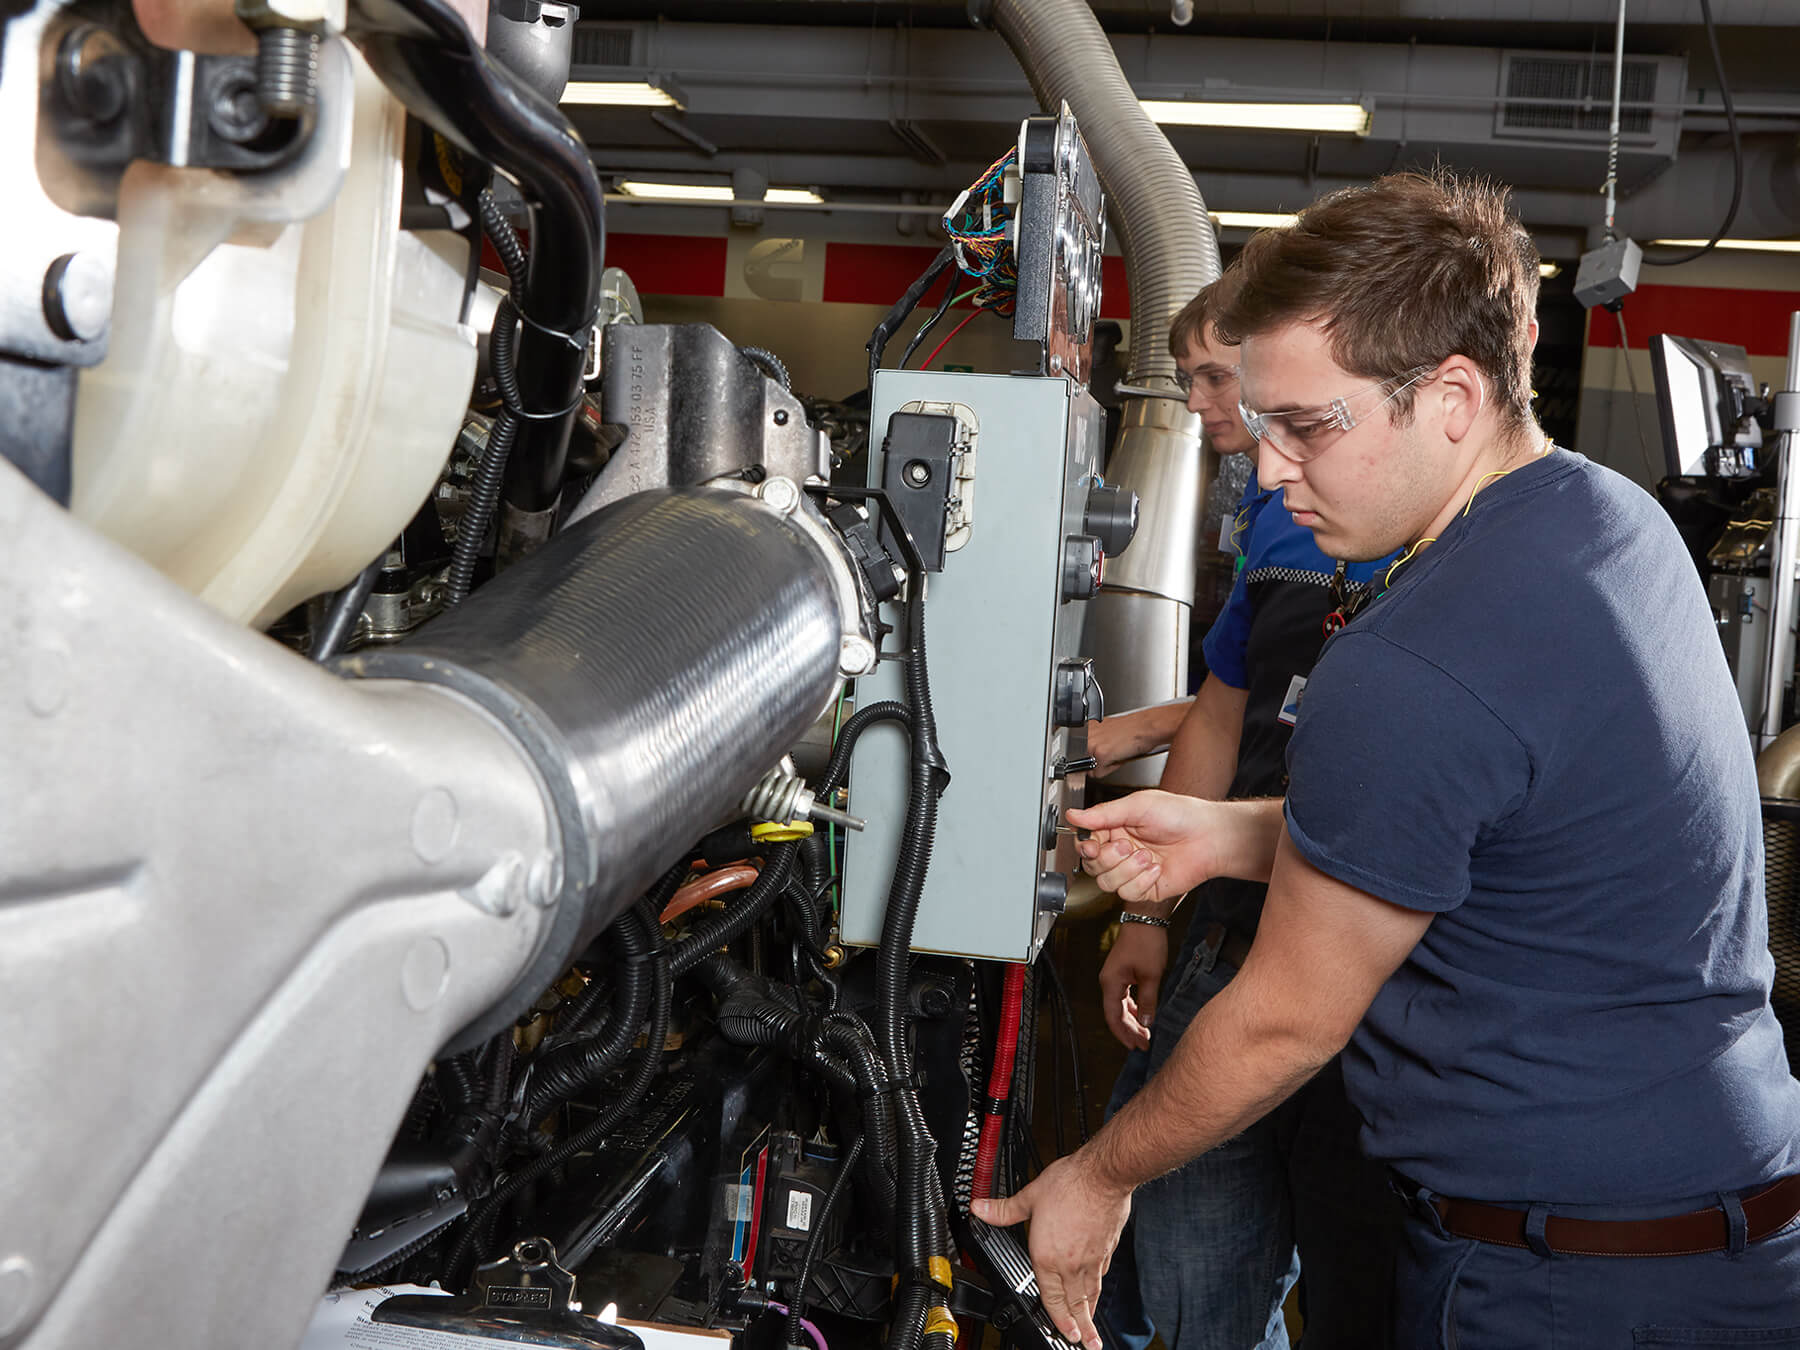 Students working a Diesel engine at the Dallas campus